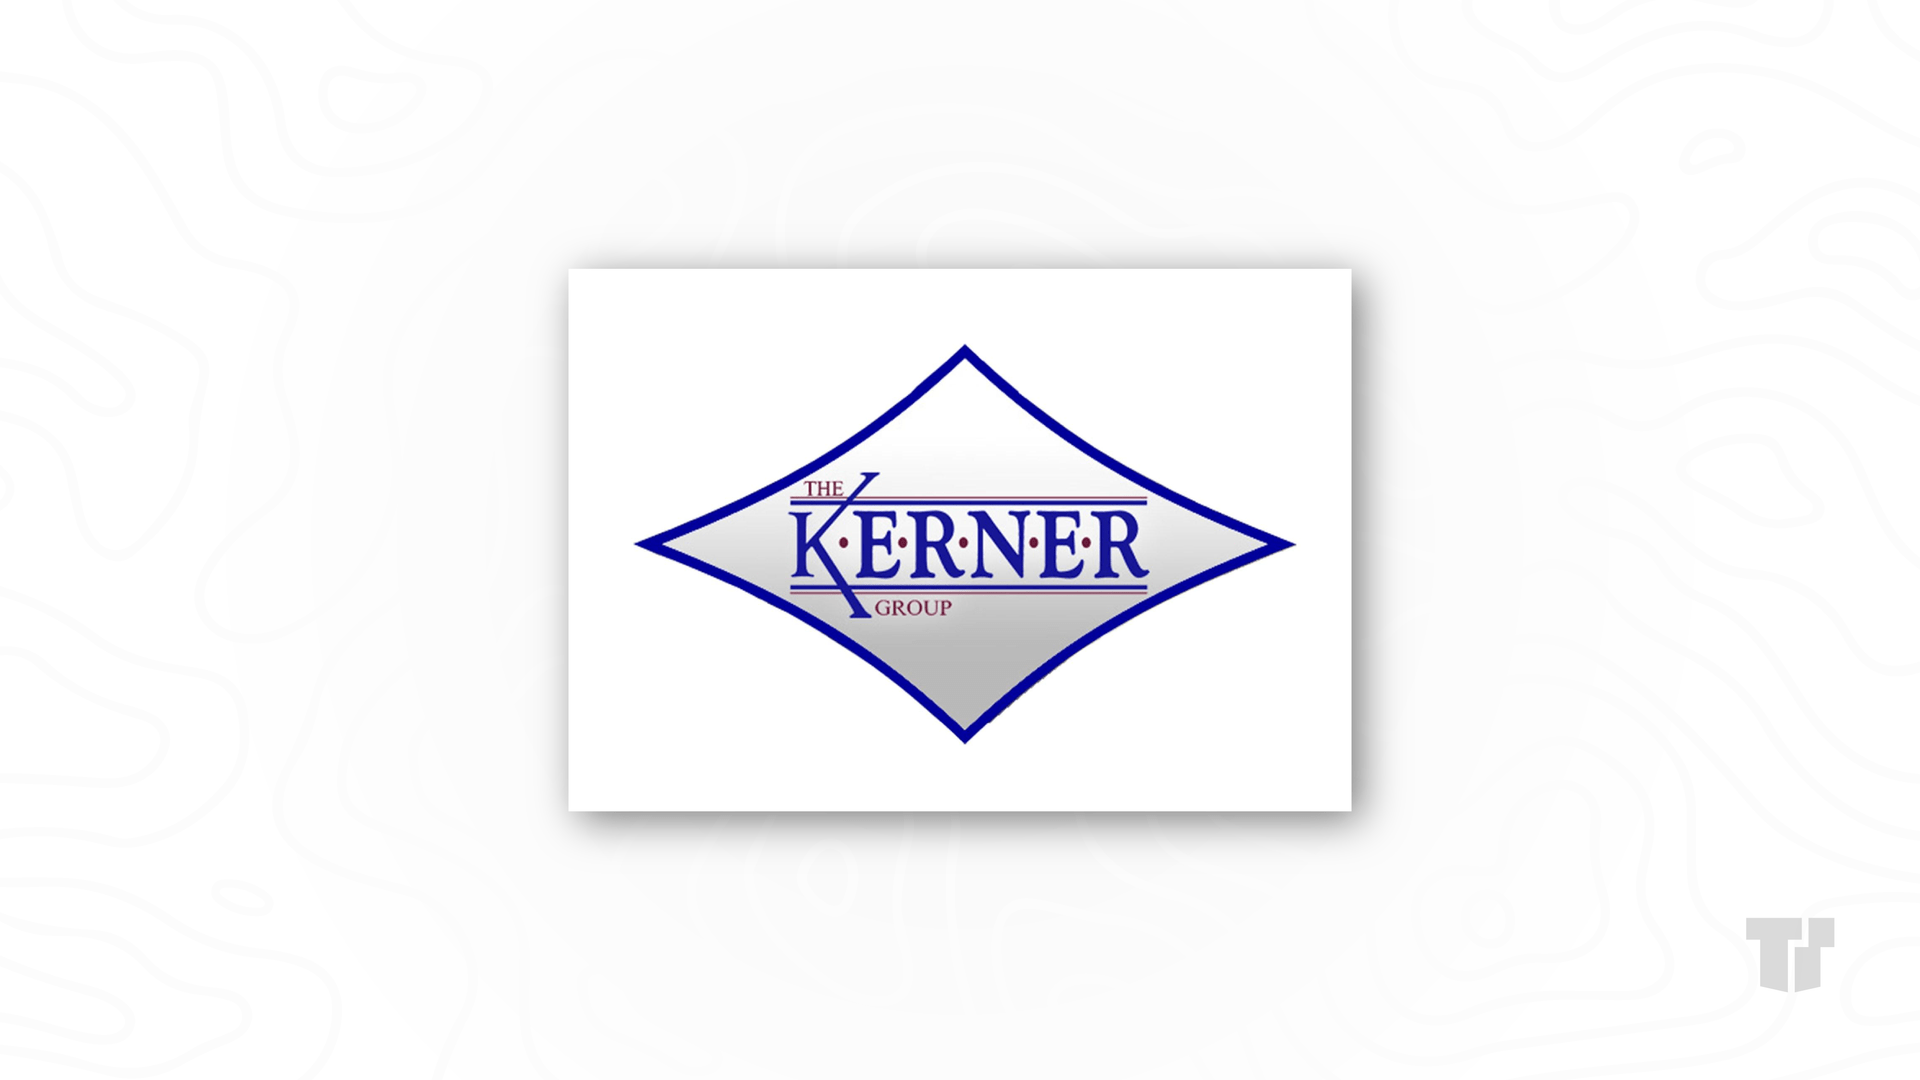 The Kerner Group cover image